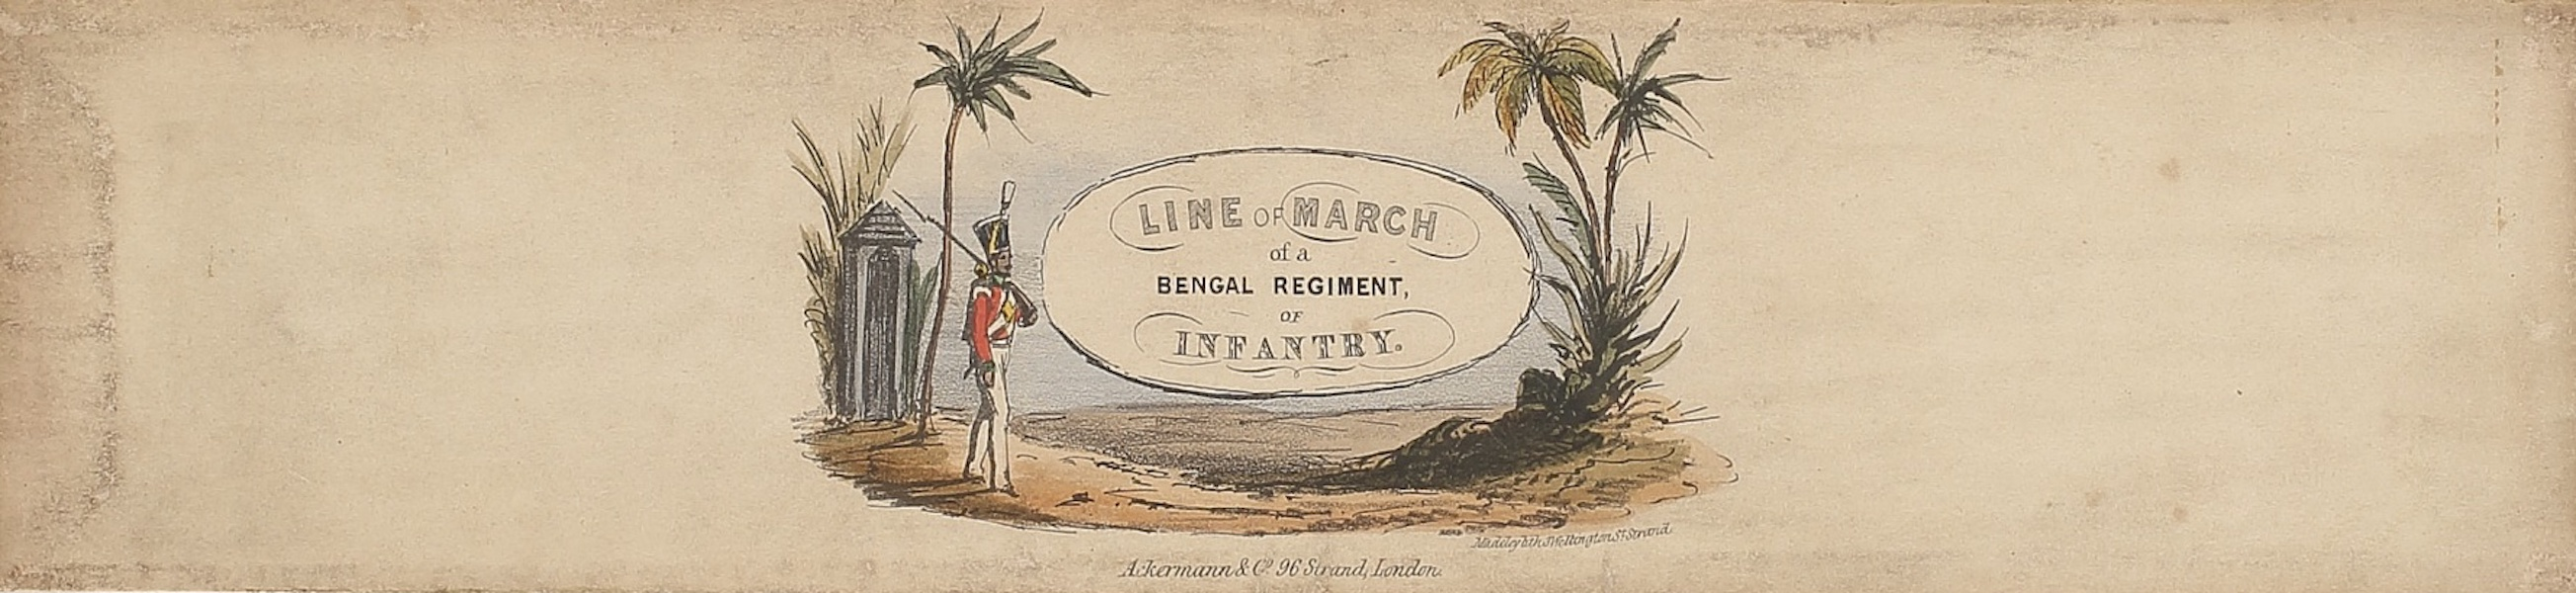 Line of March of a Bengal Regiment of Infantry - Title Page (1840)